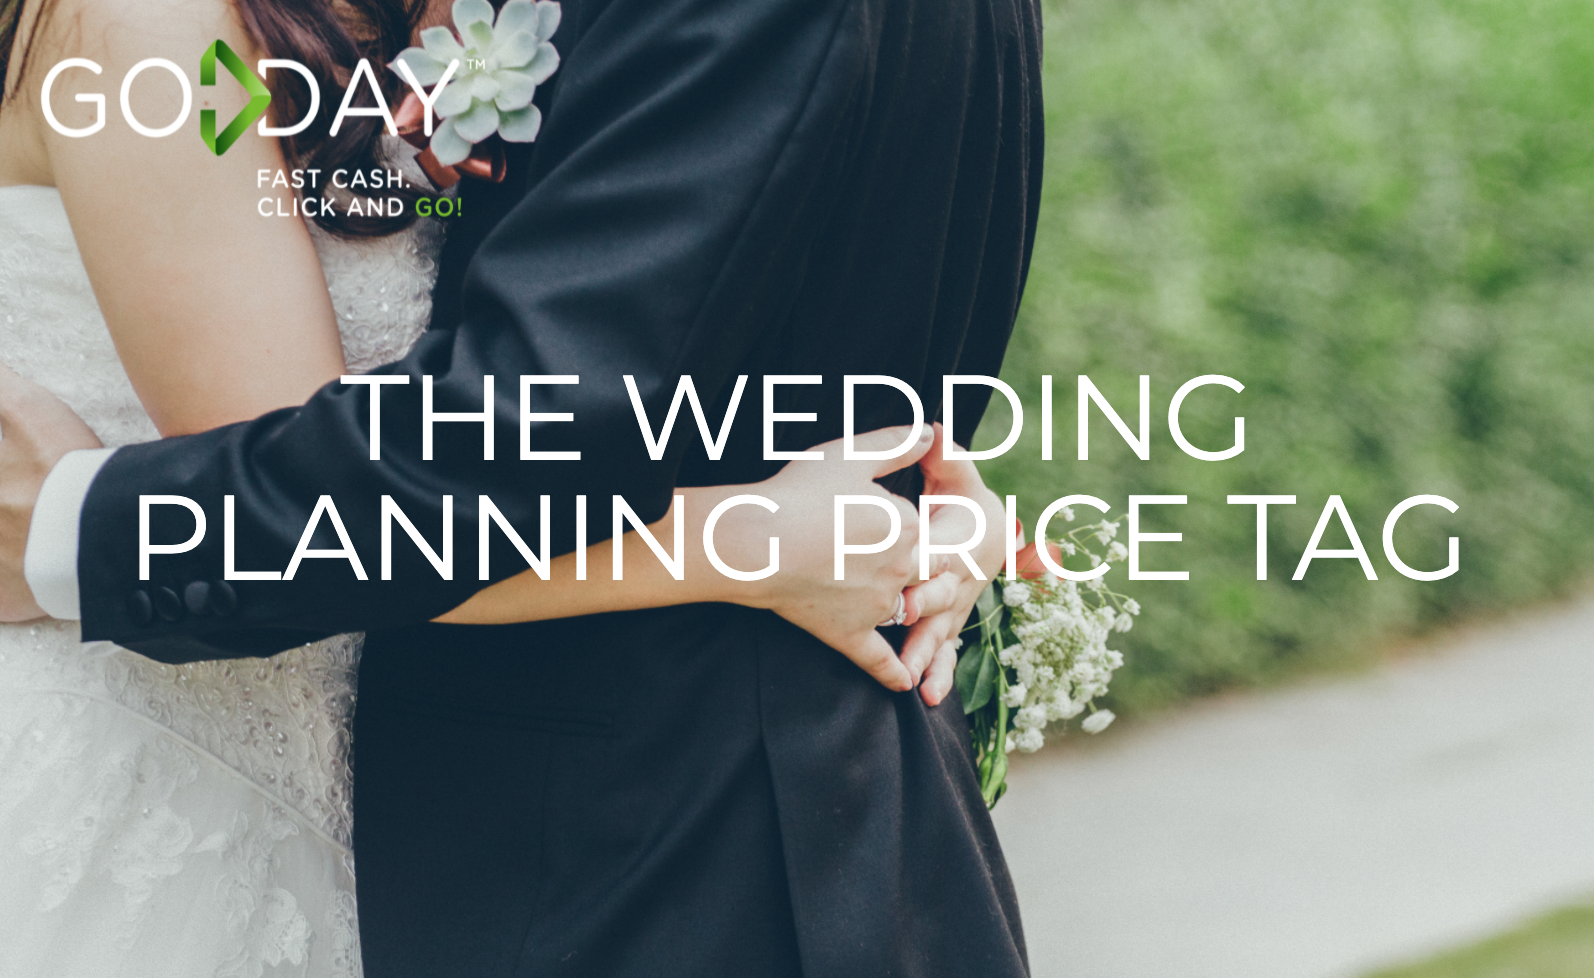 The Wedding Planning Price Tag